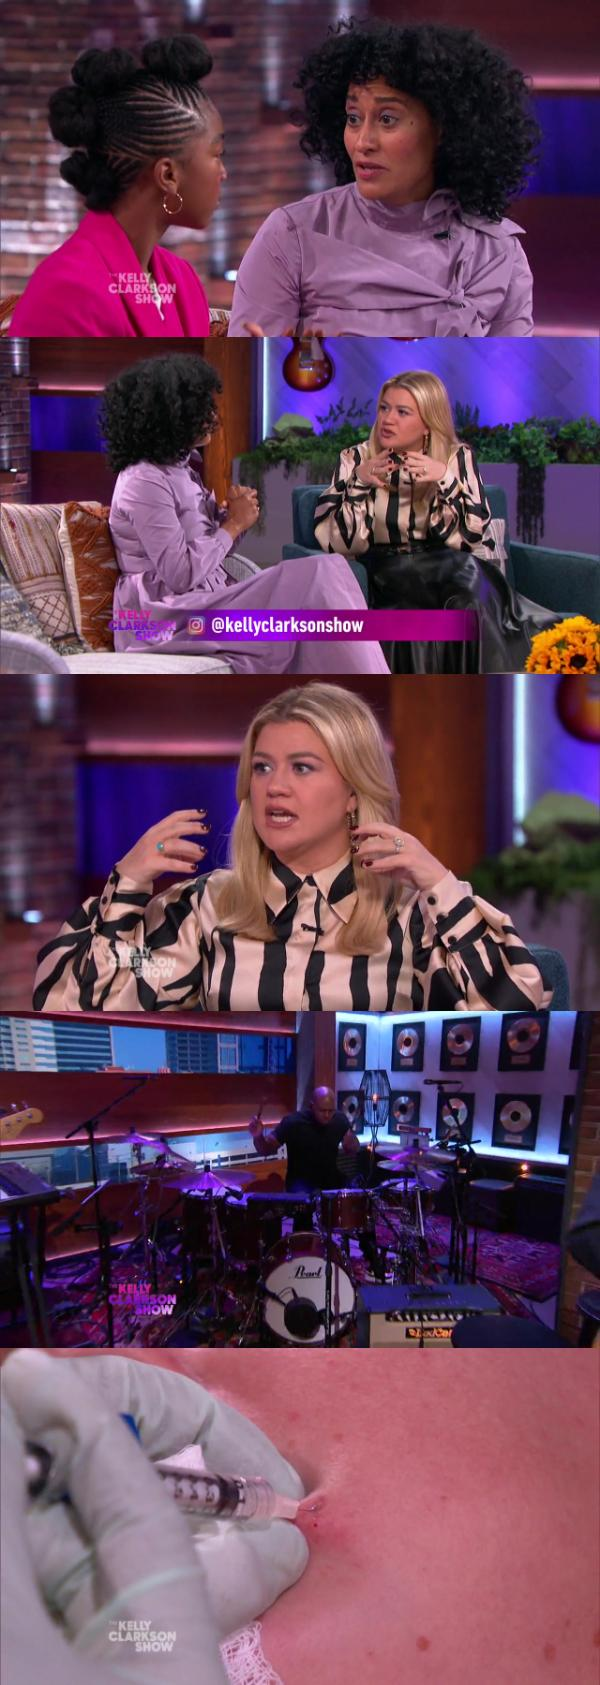 the kelly clarkson show 2019 12 04 patti labelle 720p web x264-xlf